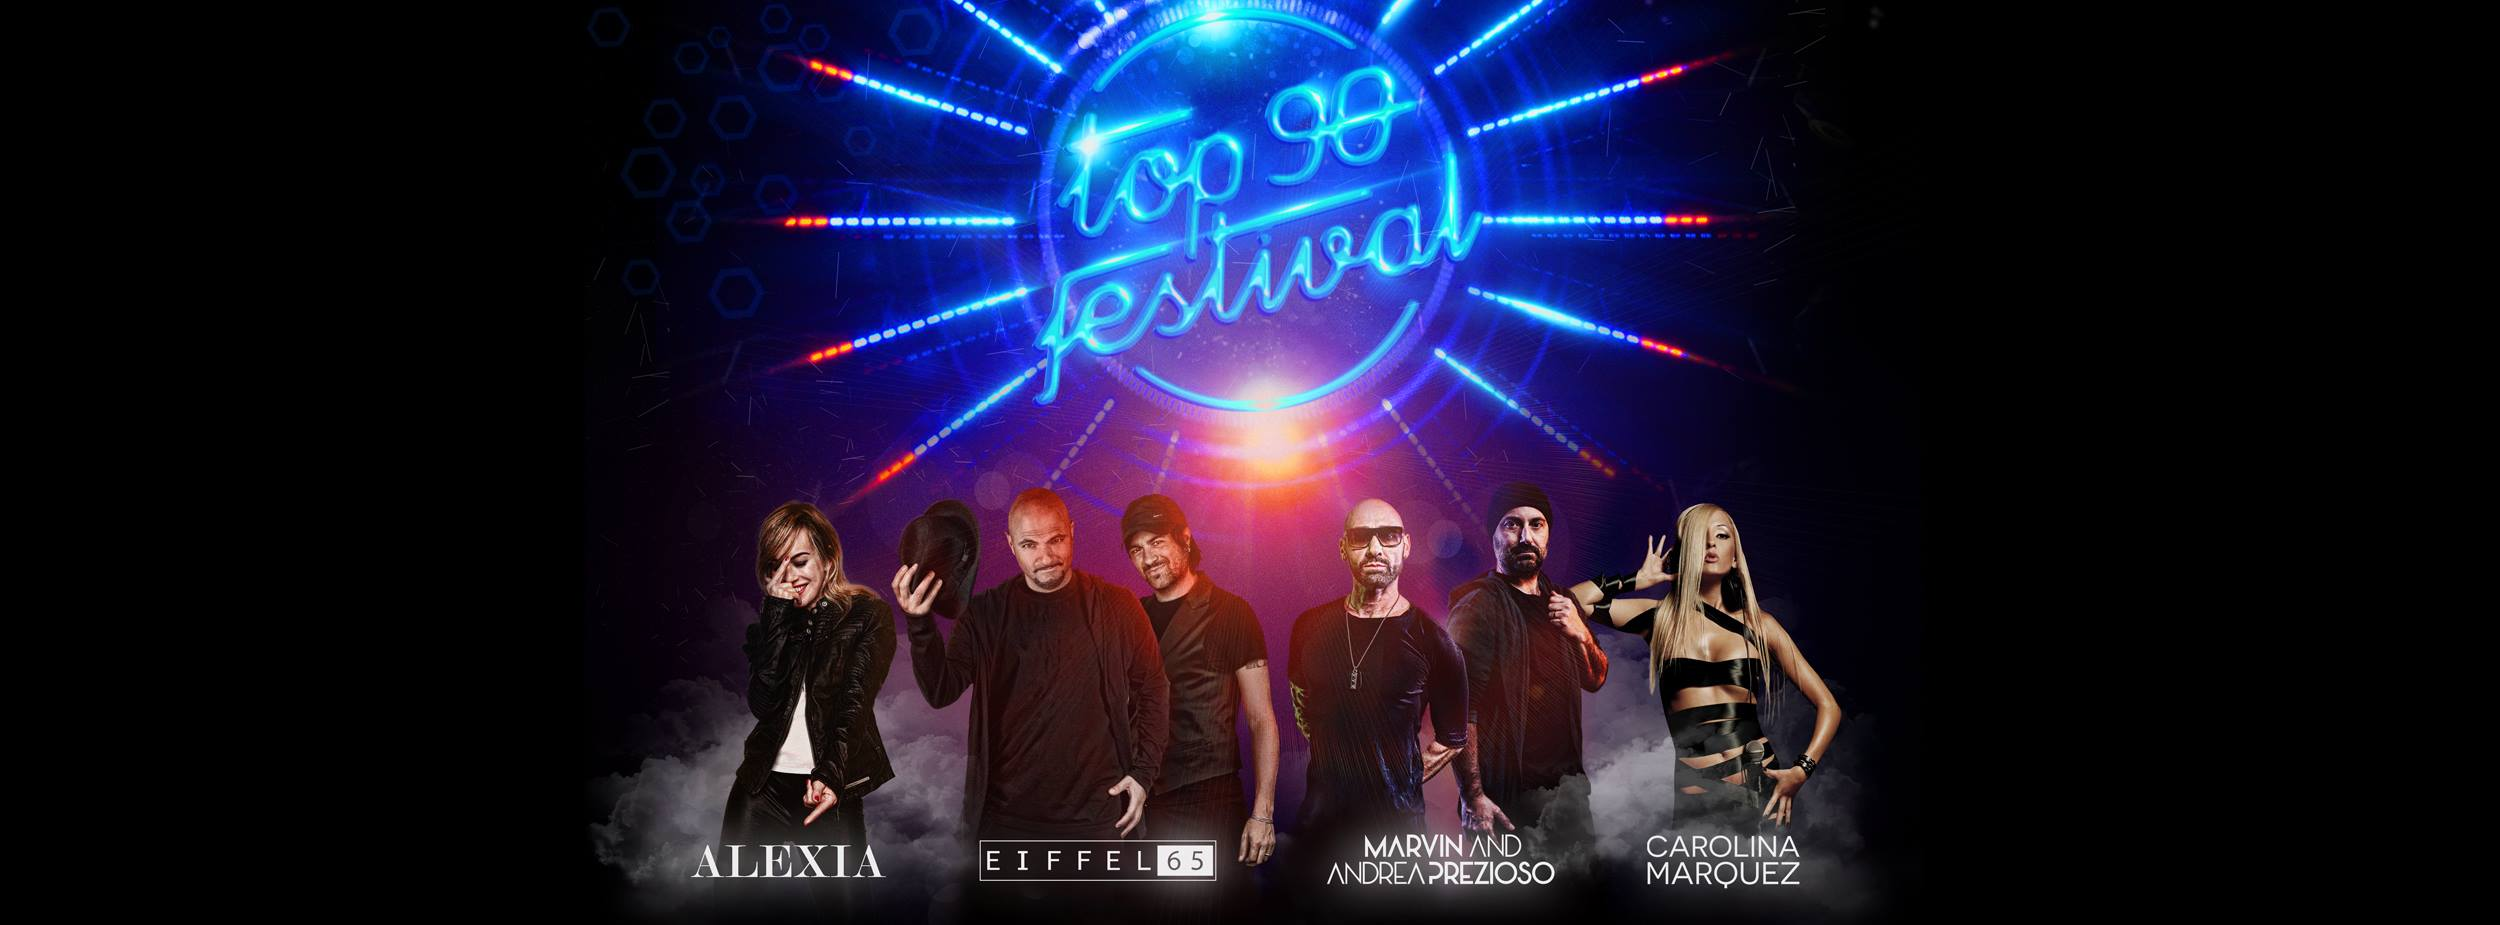 "TOP 90 FESTIVAL ""Alexia _ Eiffel 65 _ Marvin and Andrea Prezioso _ Carolina Marquez"""